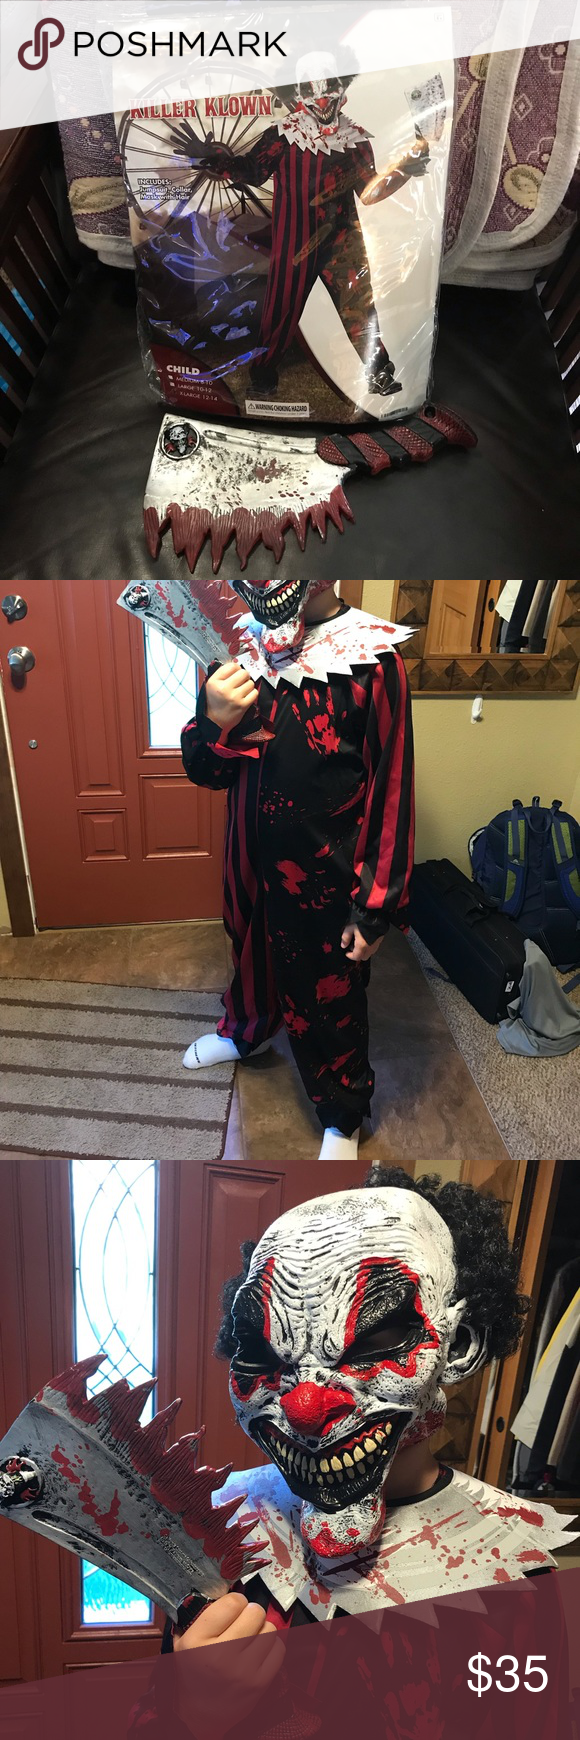 NEW Killer Klown child costume set 🤡 🔪 Never used! Only